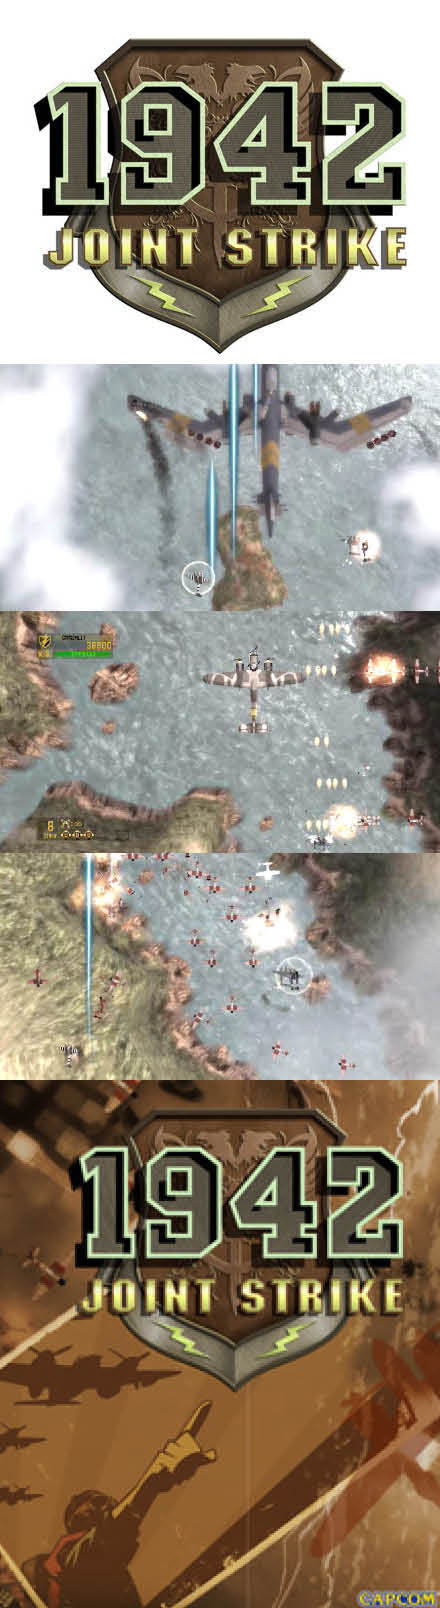 RetroGamer Arcade Top Down Shooter 1942 Has A HD Updated Version For Xbox